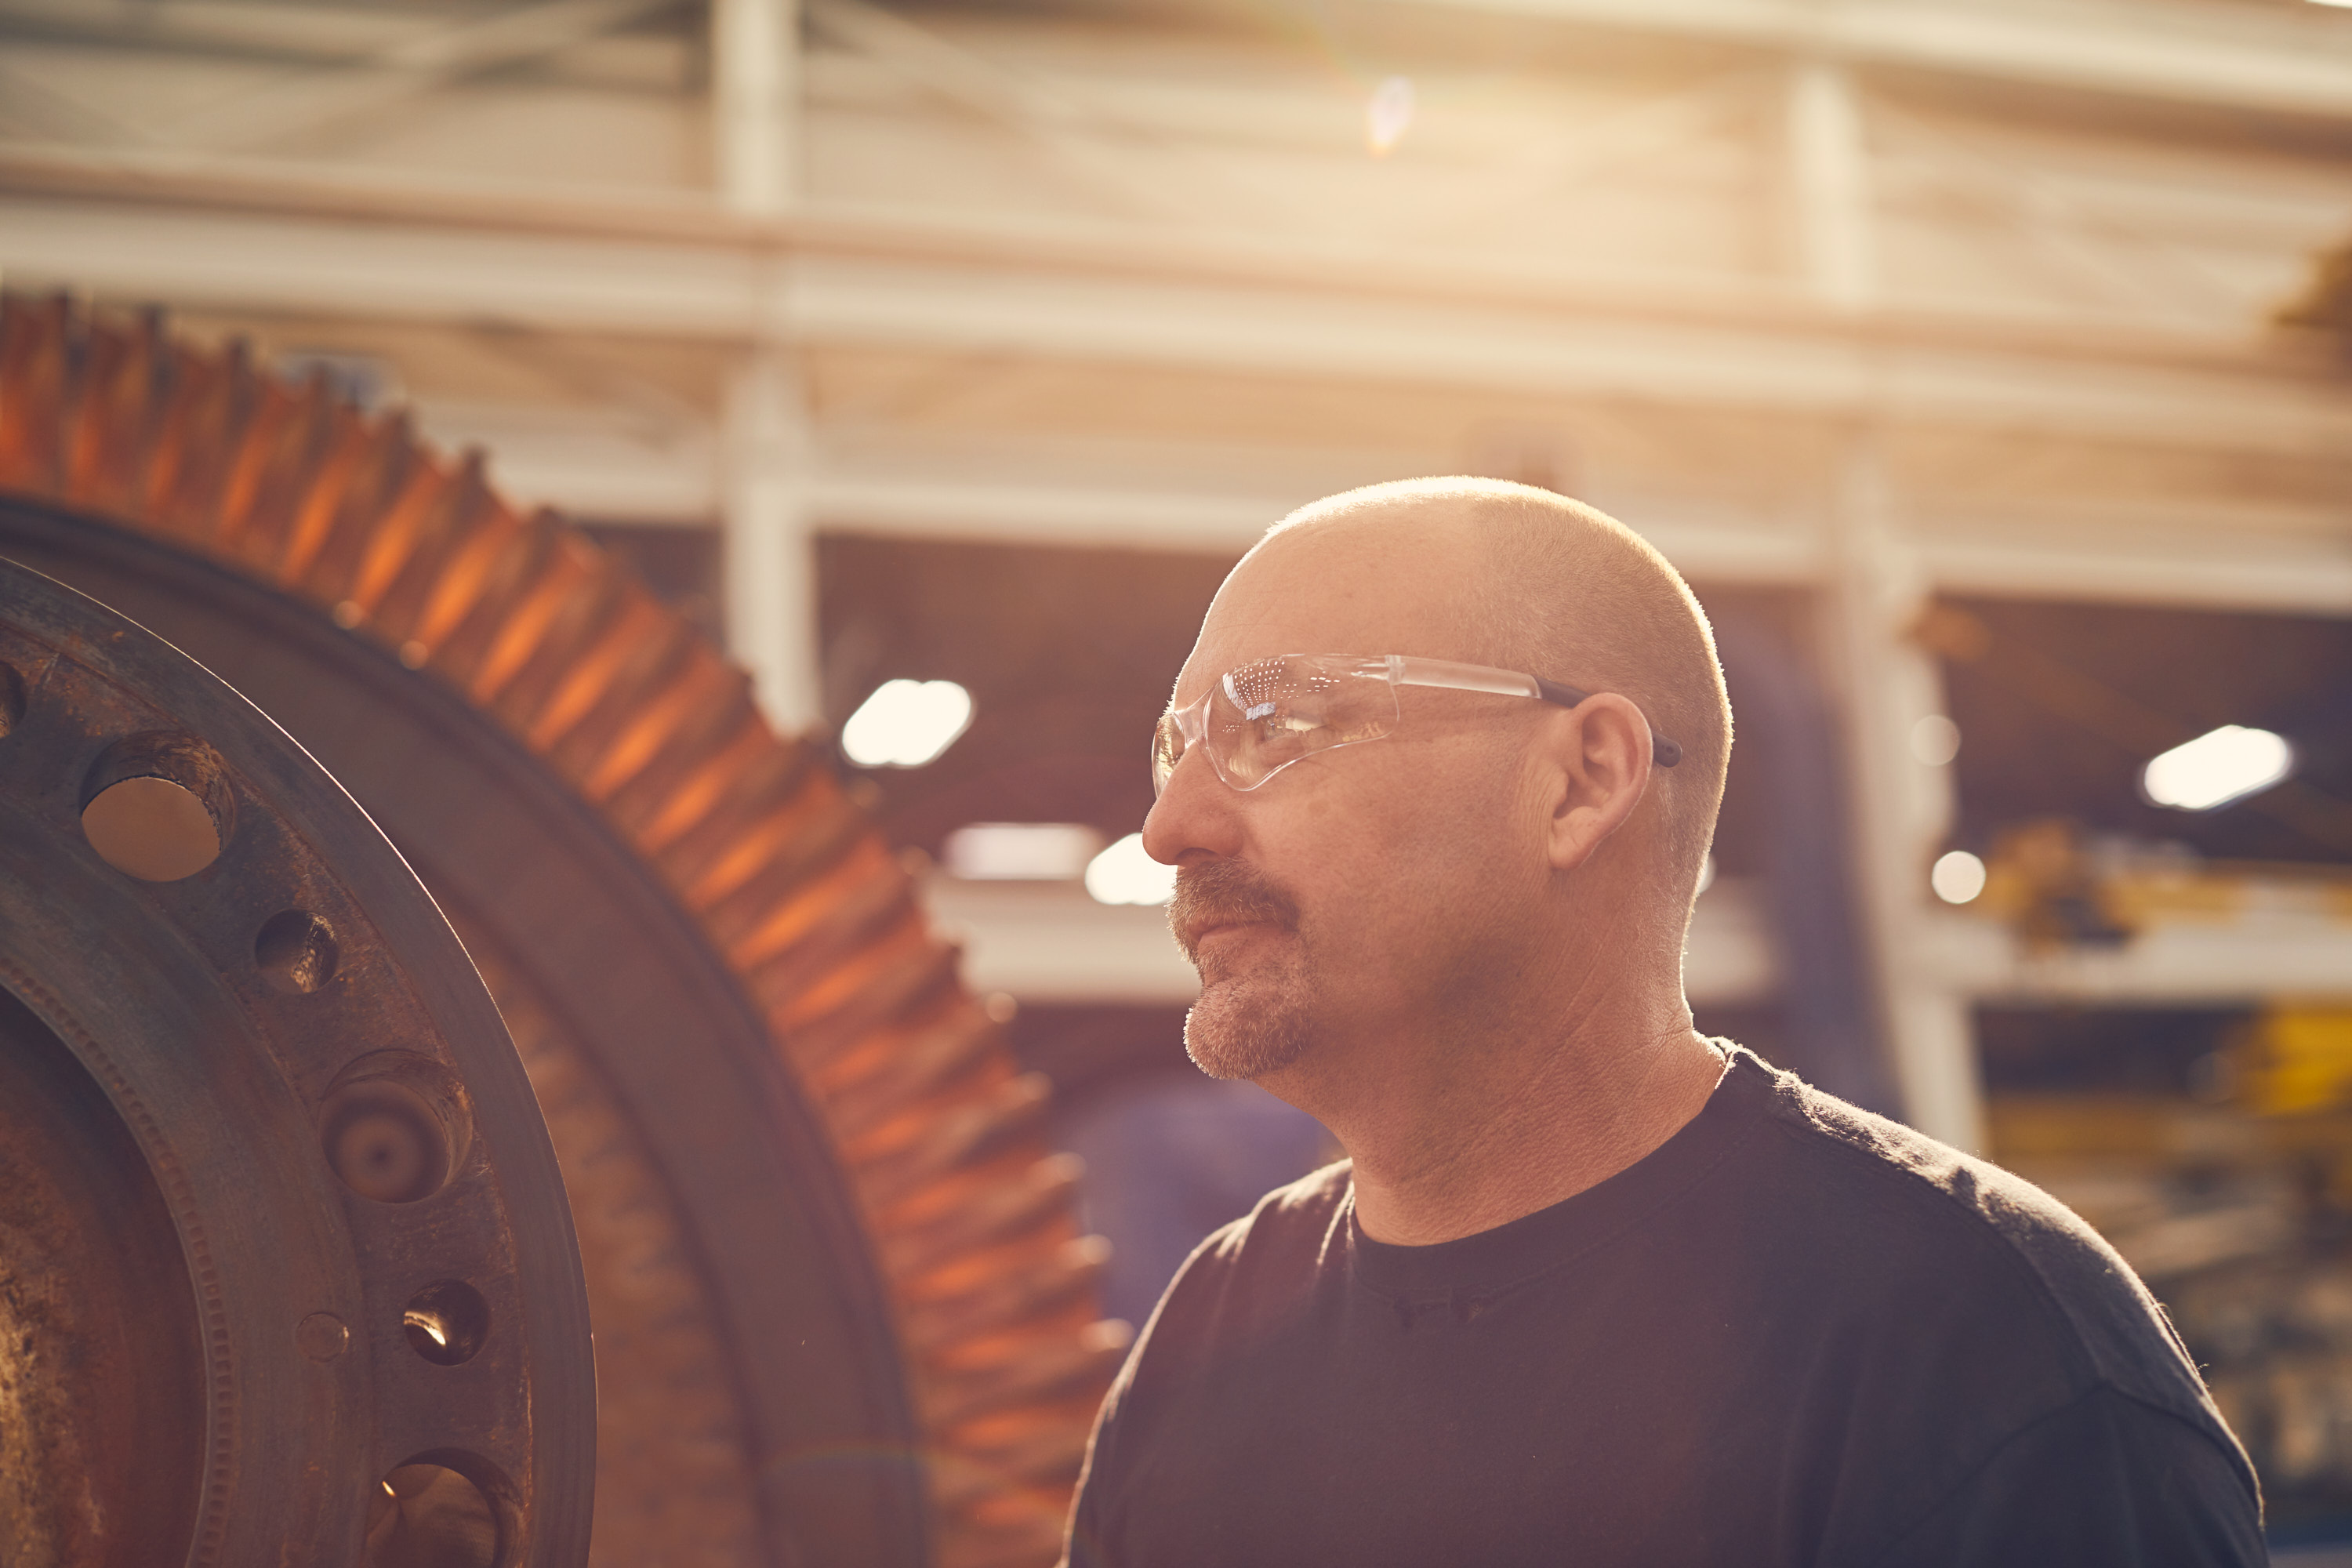 Machinist Outside | Industrial Photography